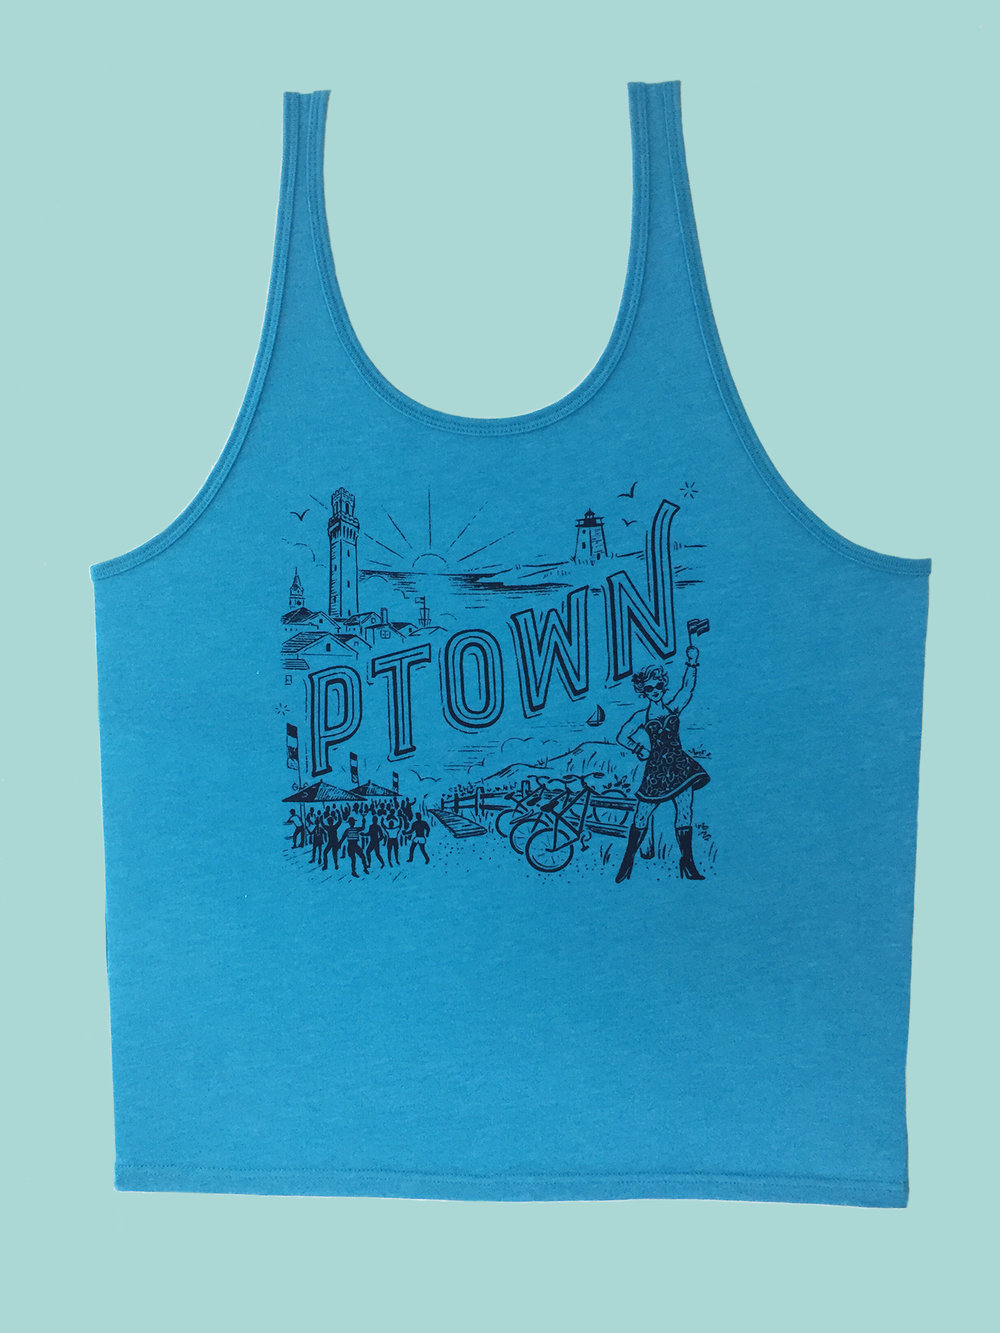 T-SHIRT: Blue Ptown Tank